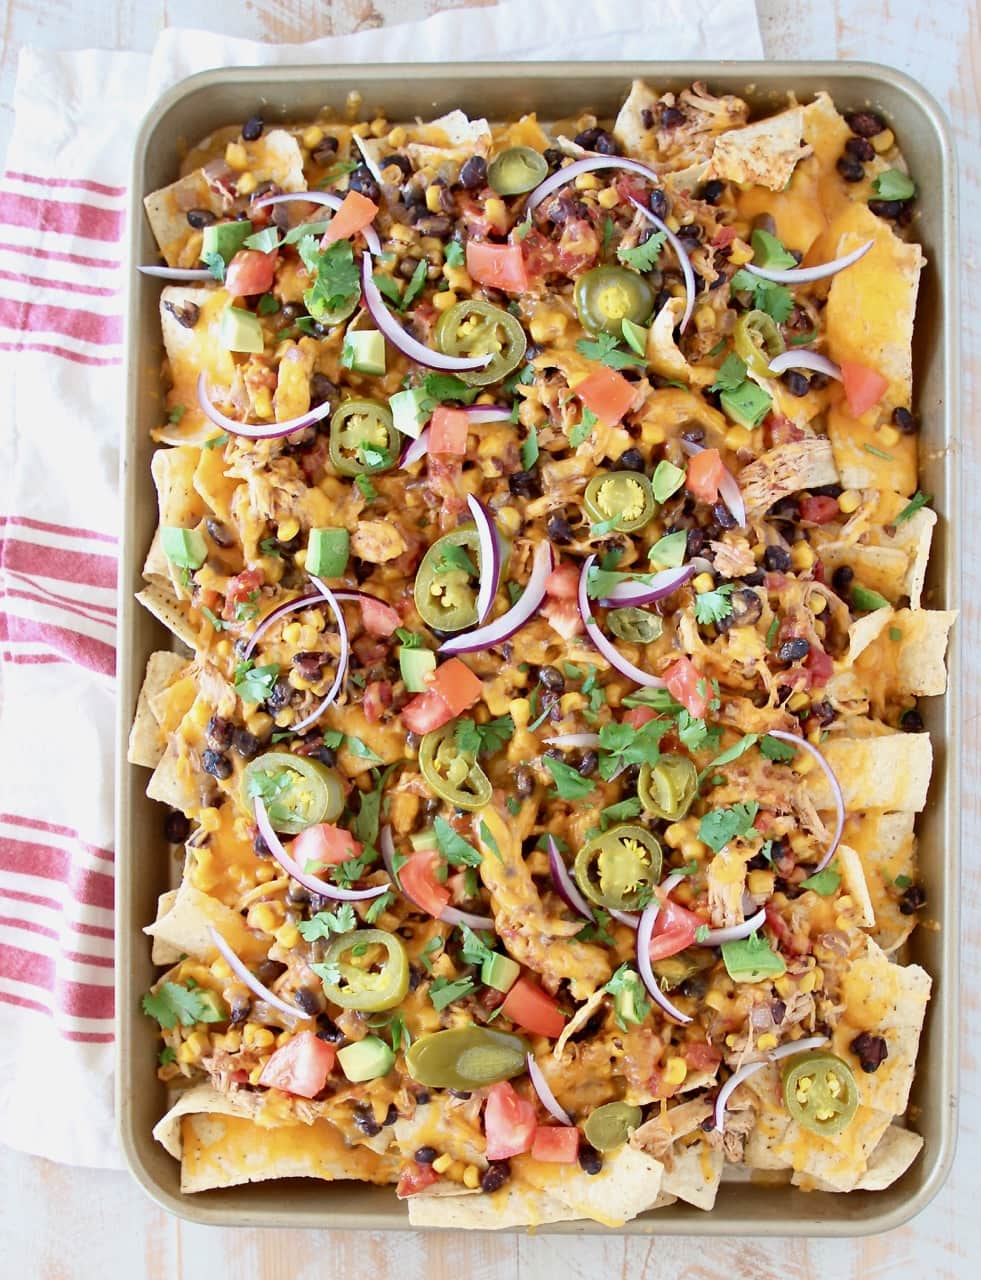 Sheet pan of chicken nachos topped with cheese, tomatoes, avocado, onions and jalapenos on red and white striped towel